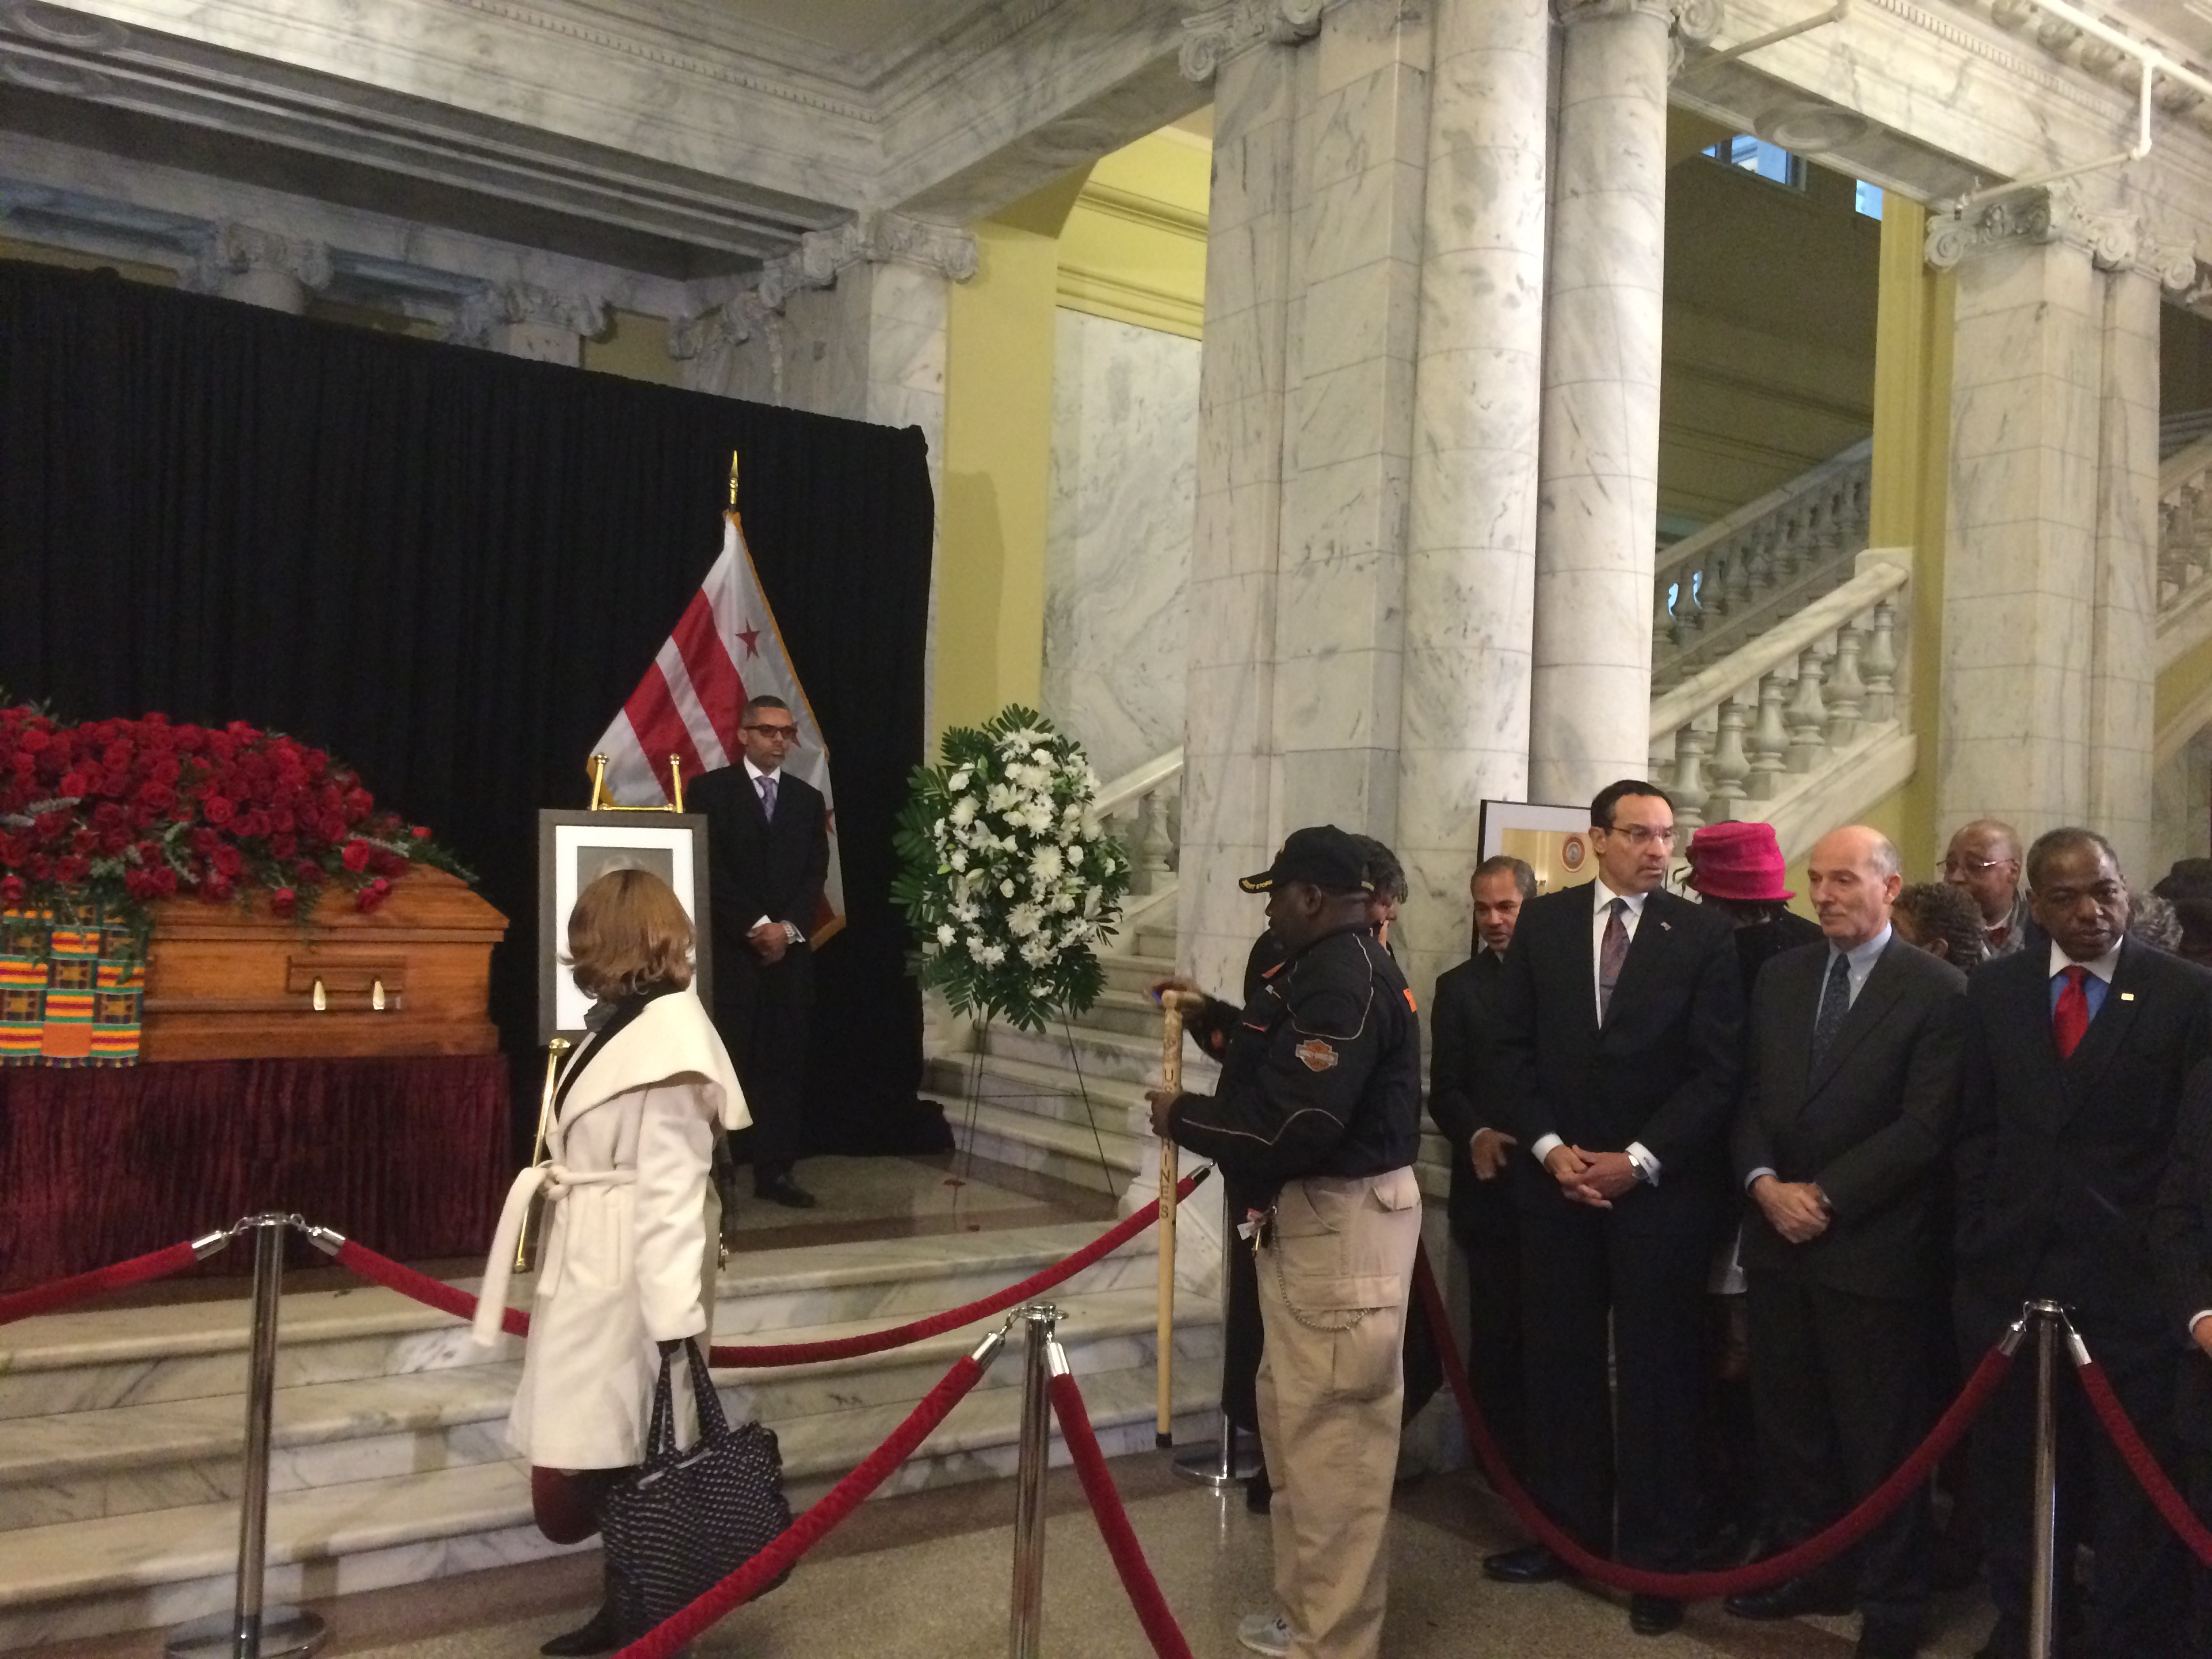 Procession, memorial services to be held for Marion Barry